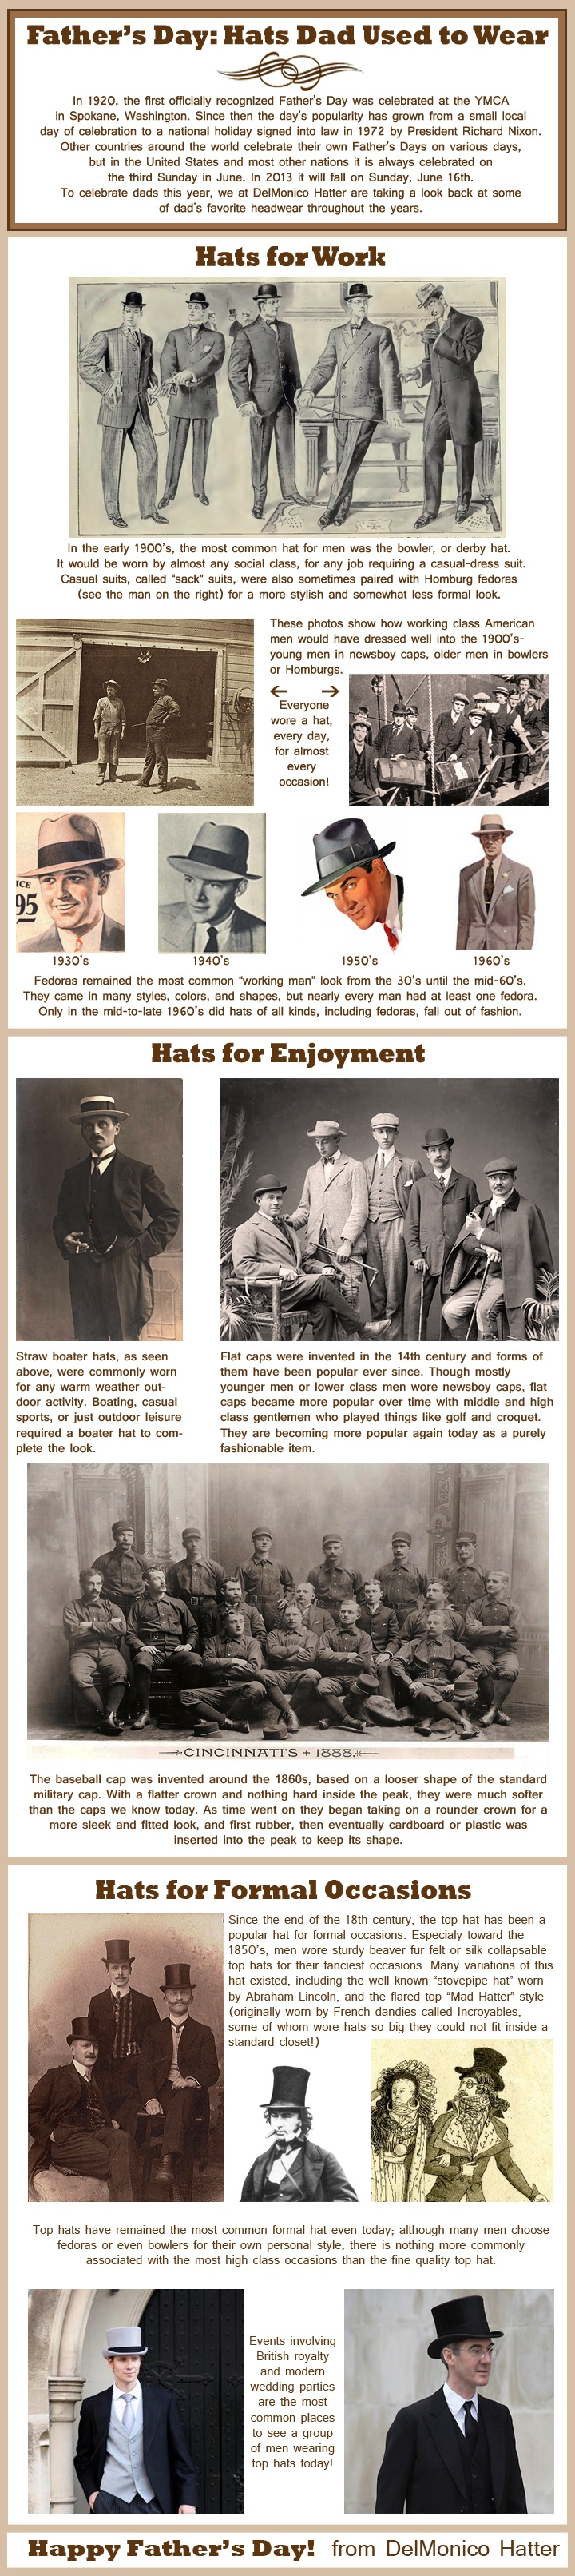 Fathers Day Hats History Infographic